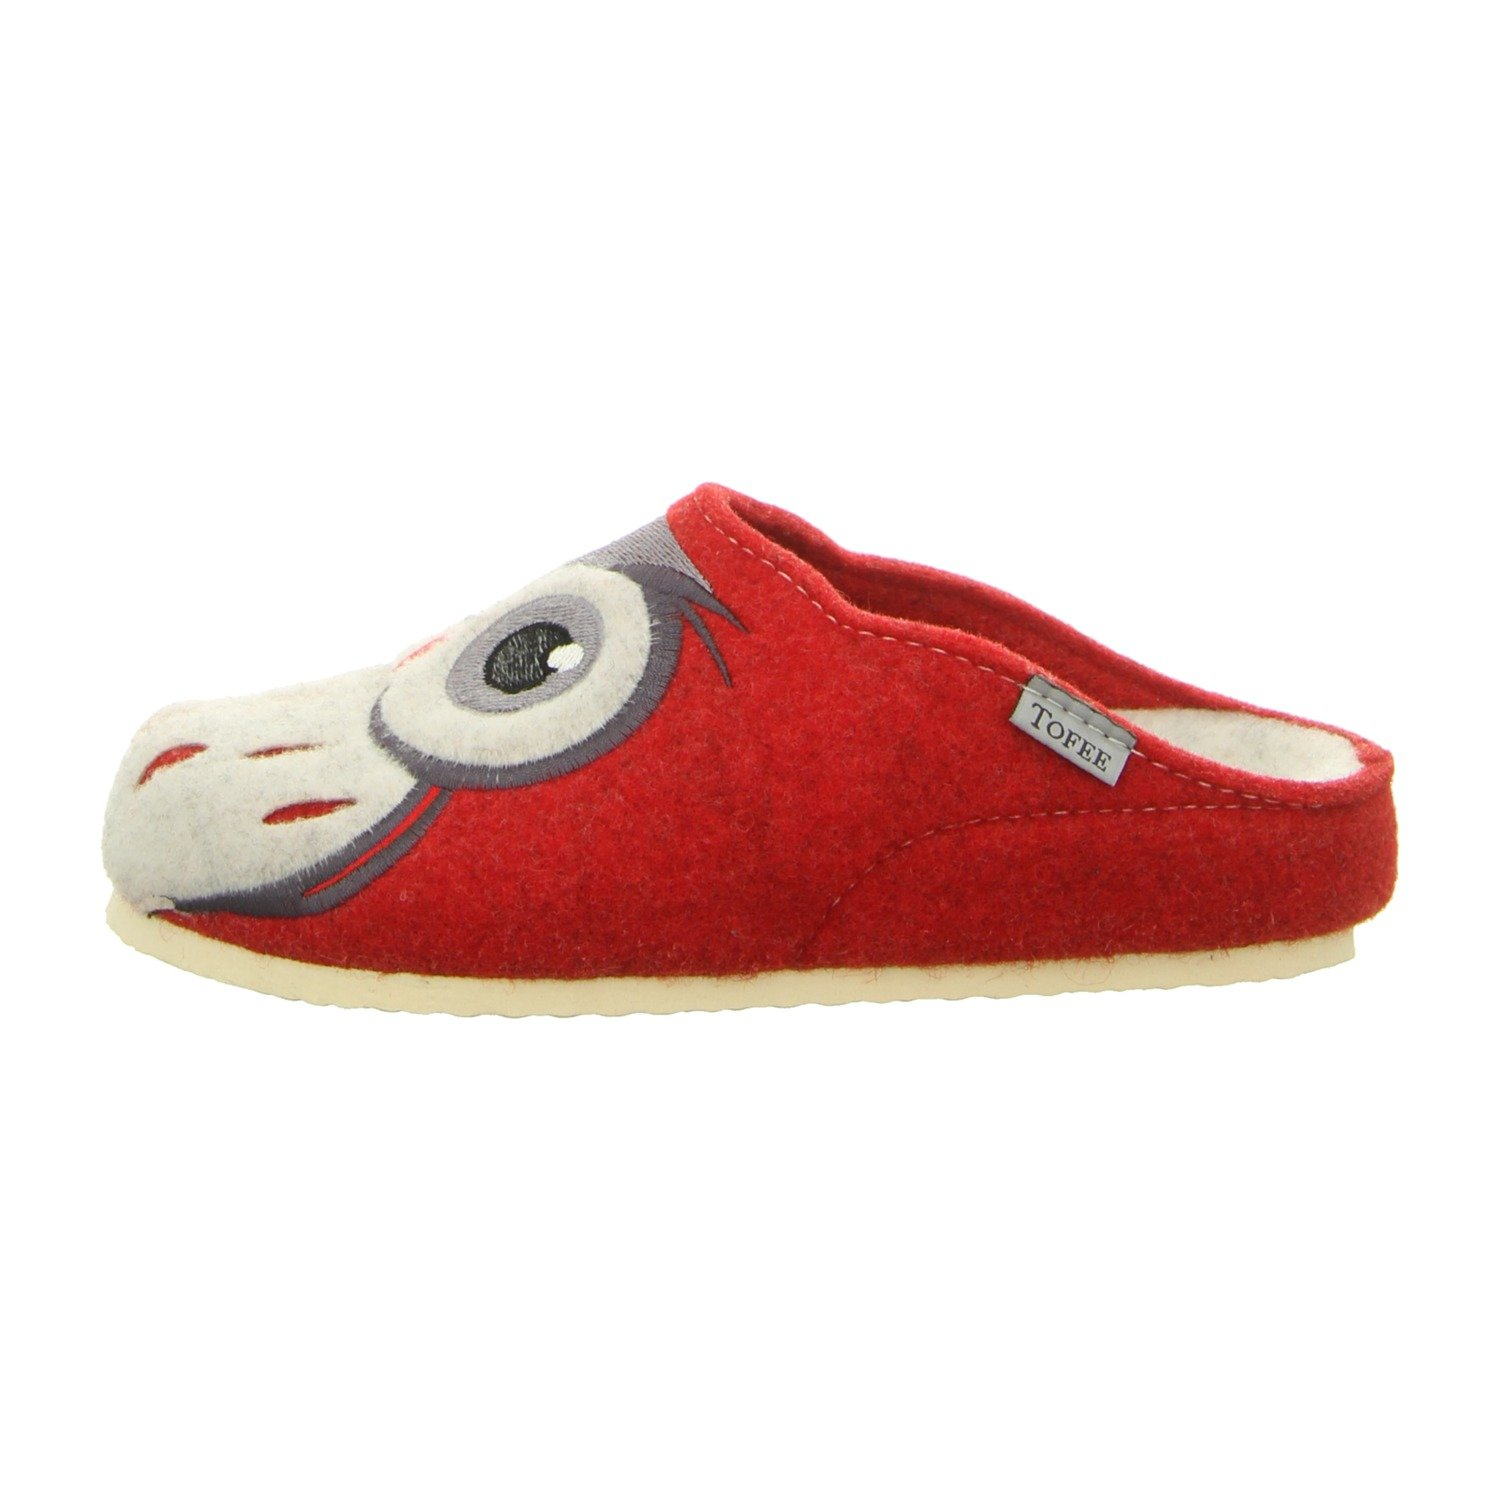 TOFEE 45031-4, 45031-4, Chaussons pour Chaussons pour femme Rouge b423660 - automatisms.space